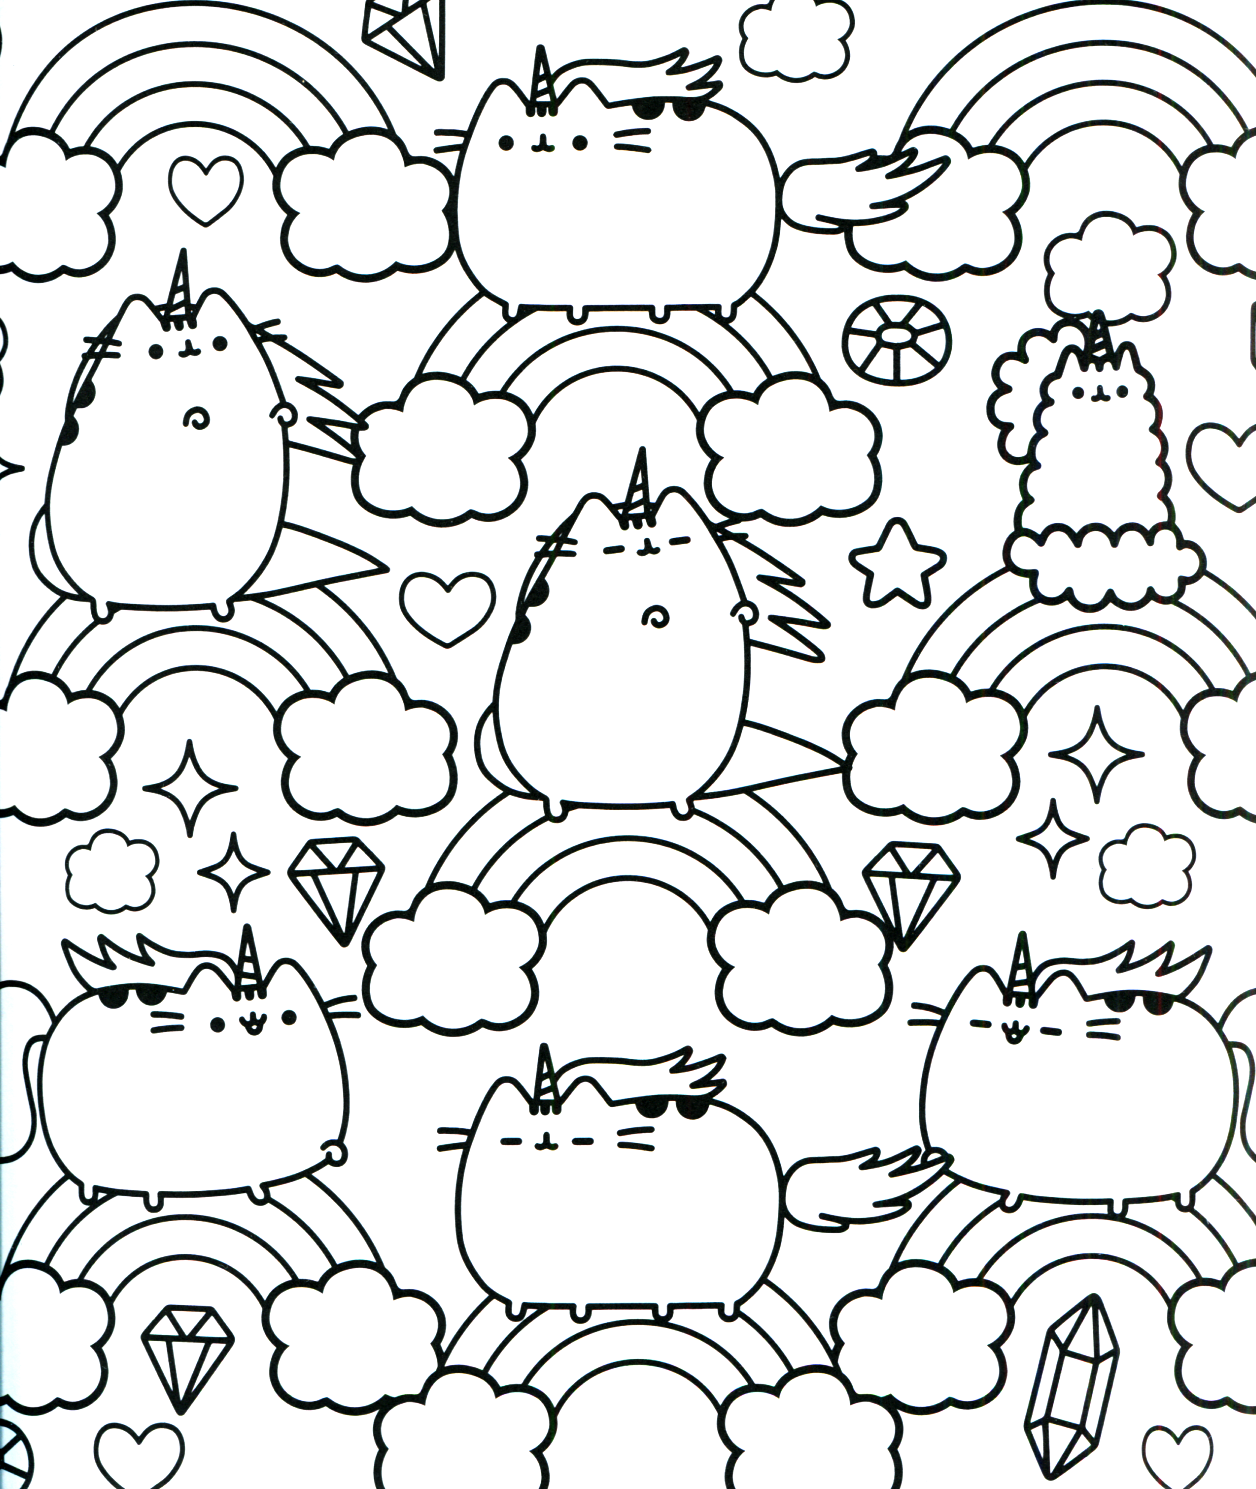 Pusheen Coloring Book Pusheen Pusheen the Cat | Unicorn ...